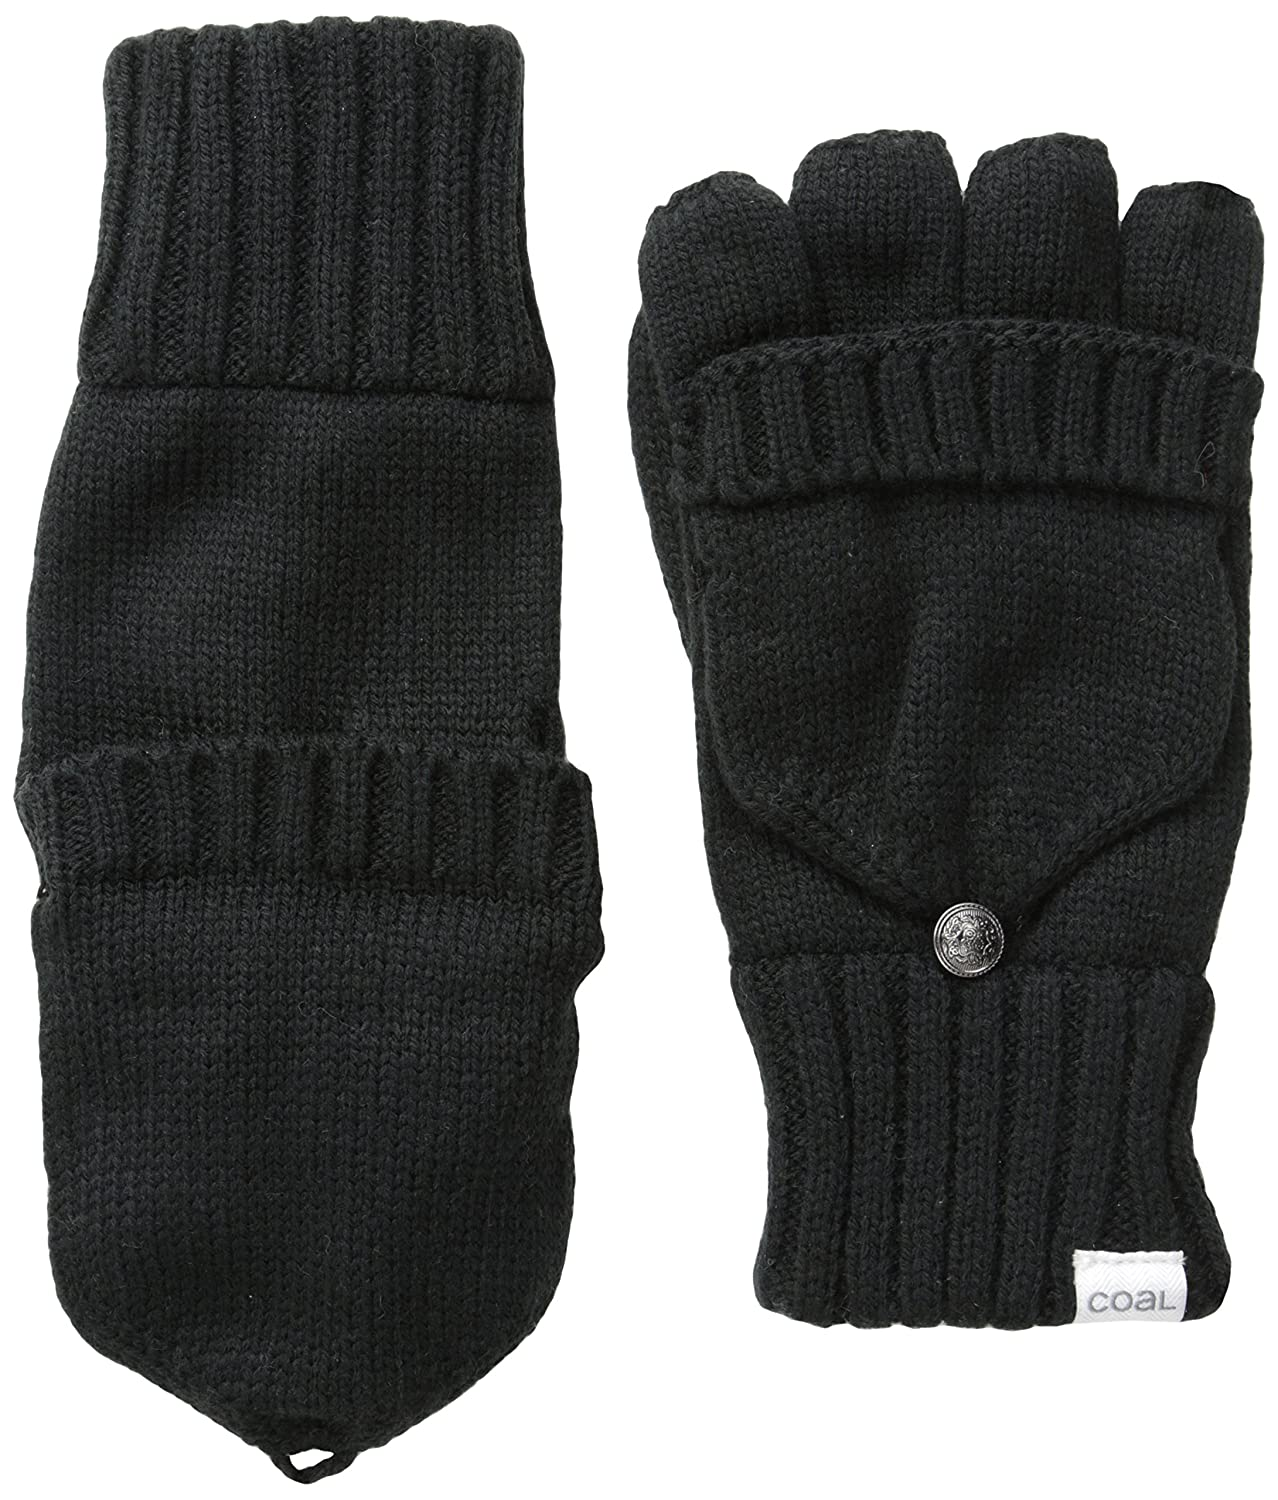 Coal Men's Woodsmen Convertible Glove Black One Size Coal Young Men's 209303